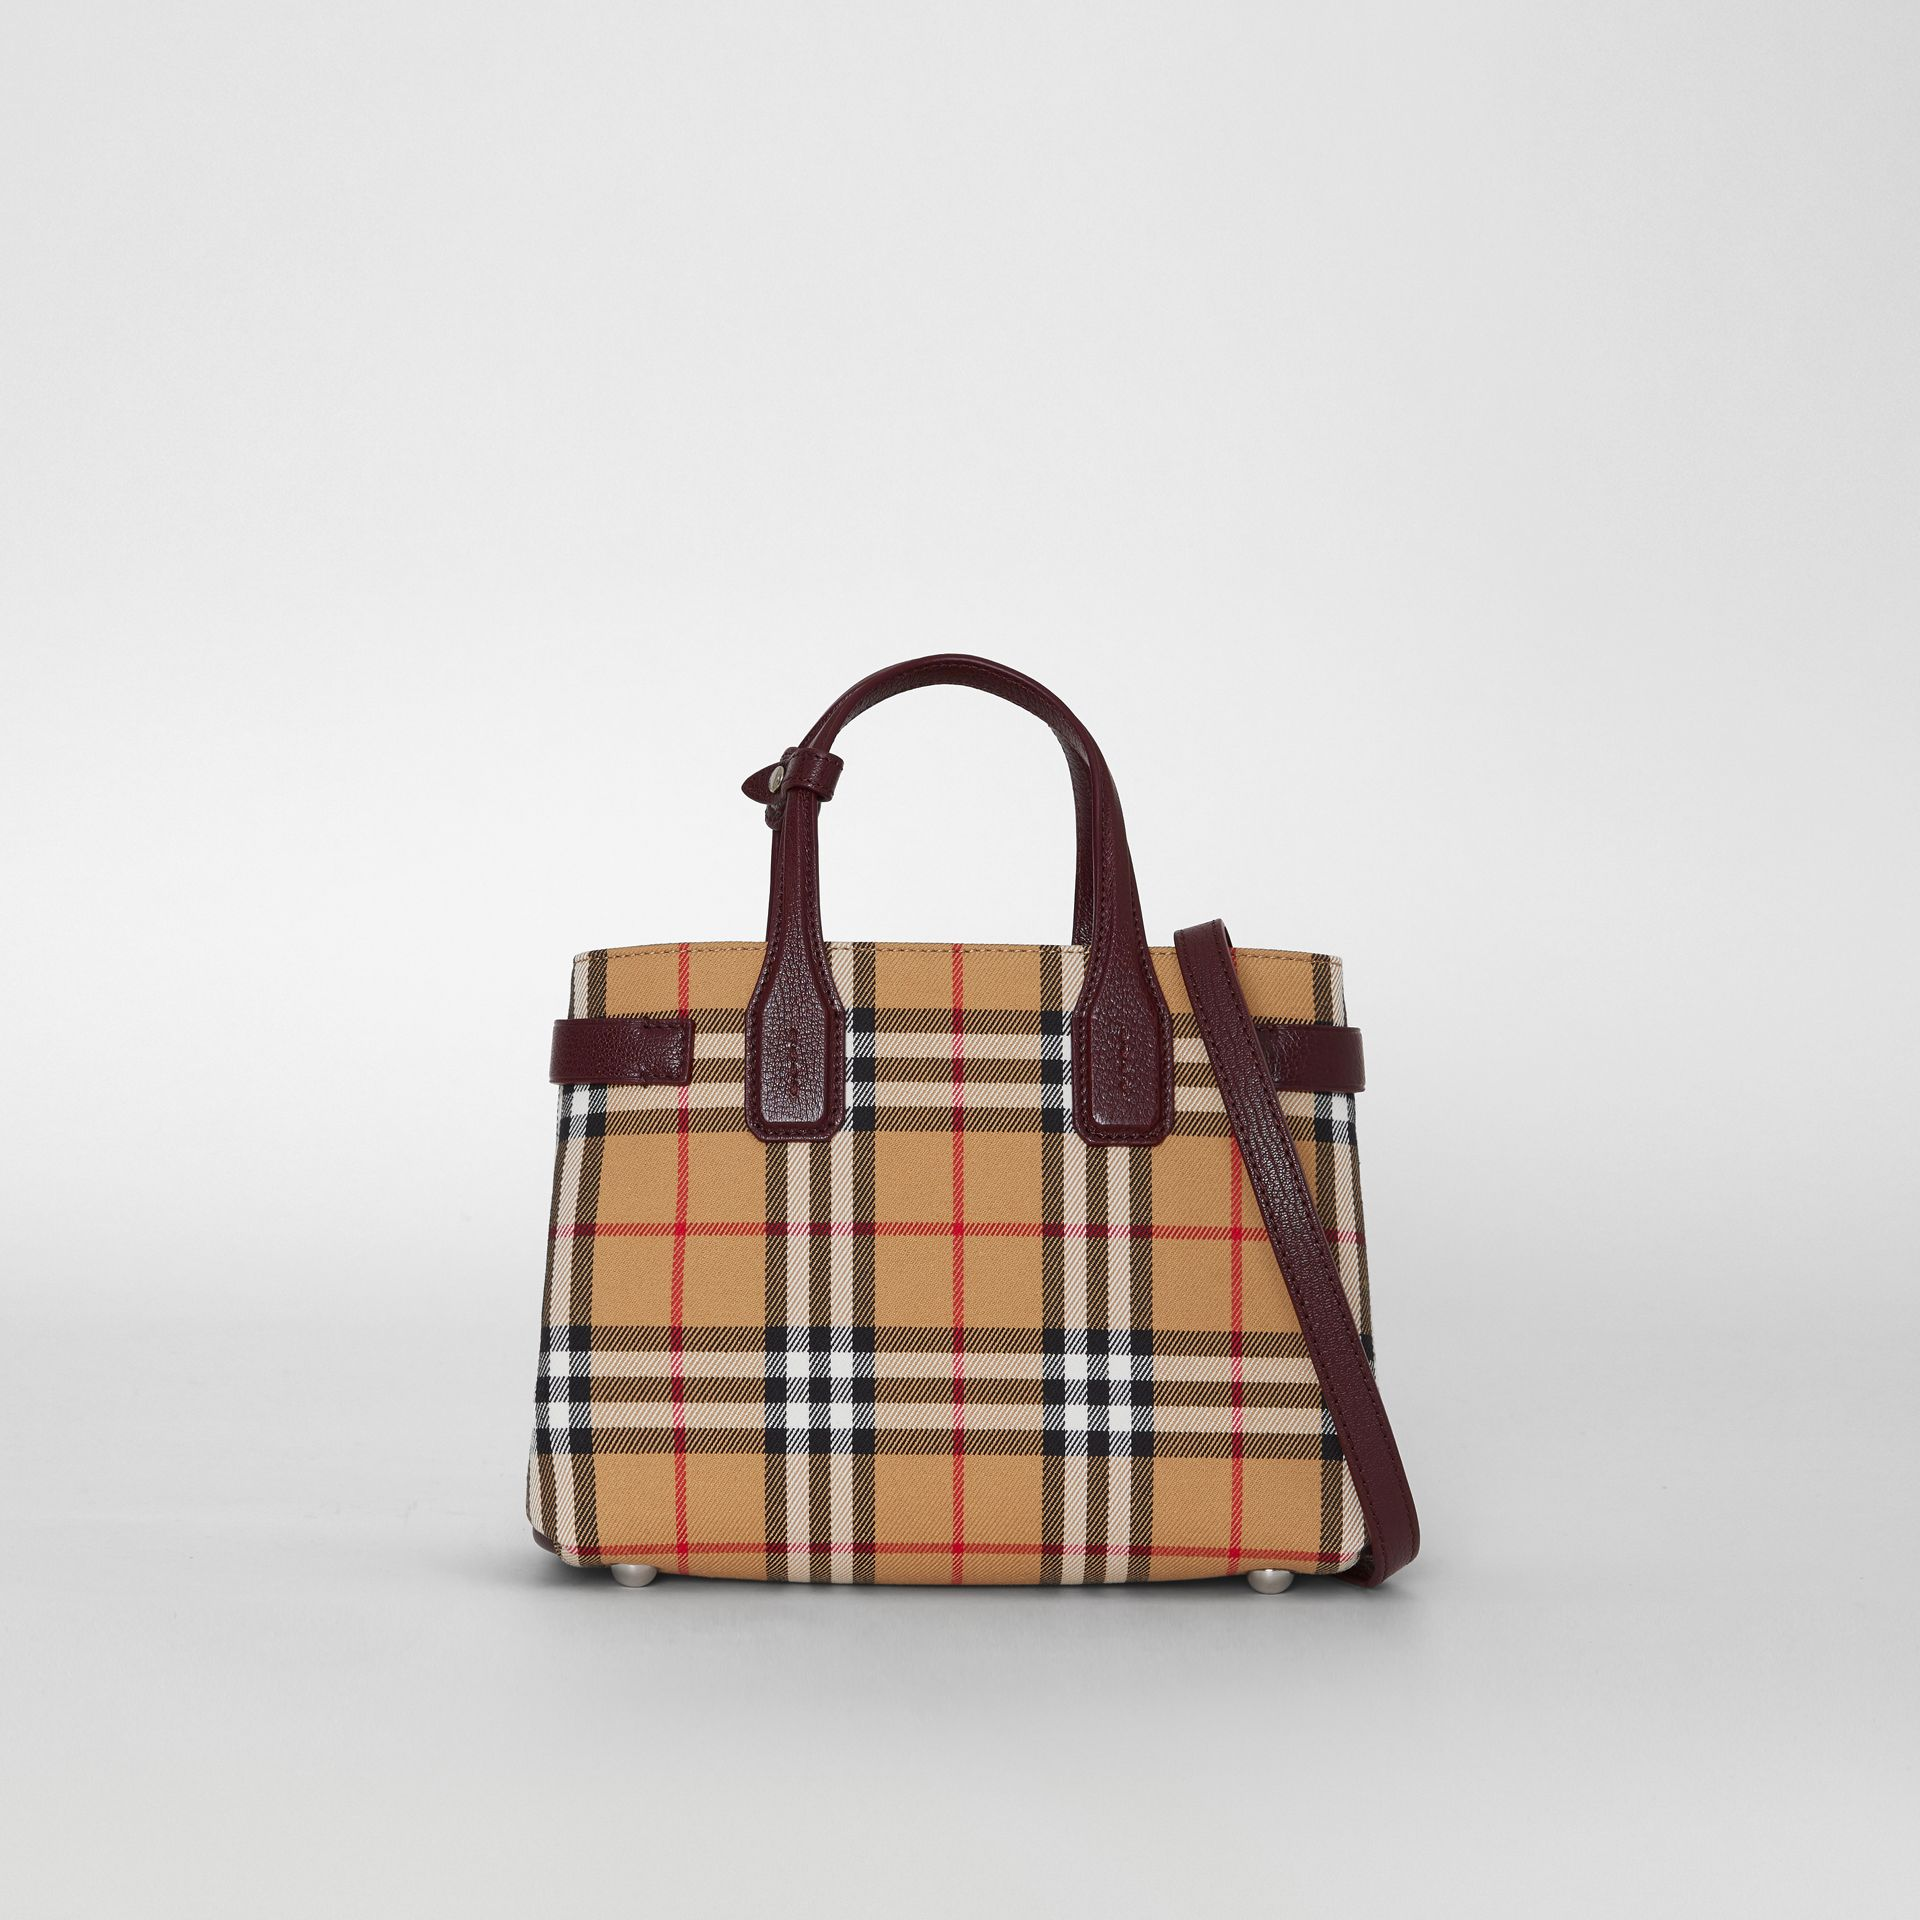 Petit sac The Banner en tissu Vintage check et cuir (Bordeaux Intense) - Femme | Burberry - photo de la galerie 0